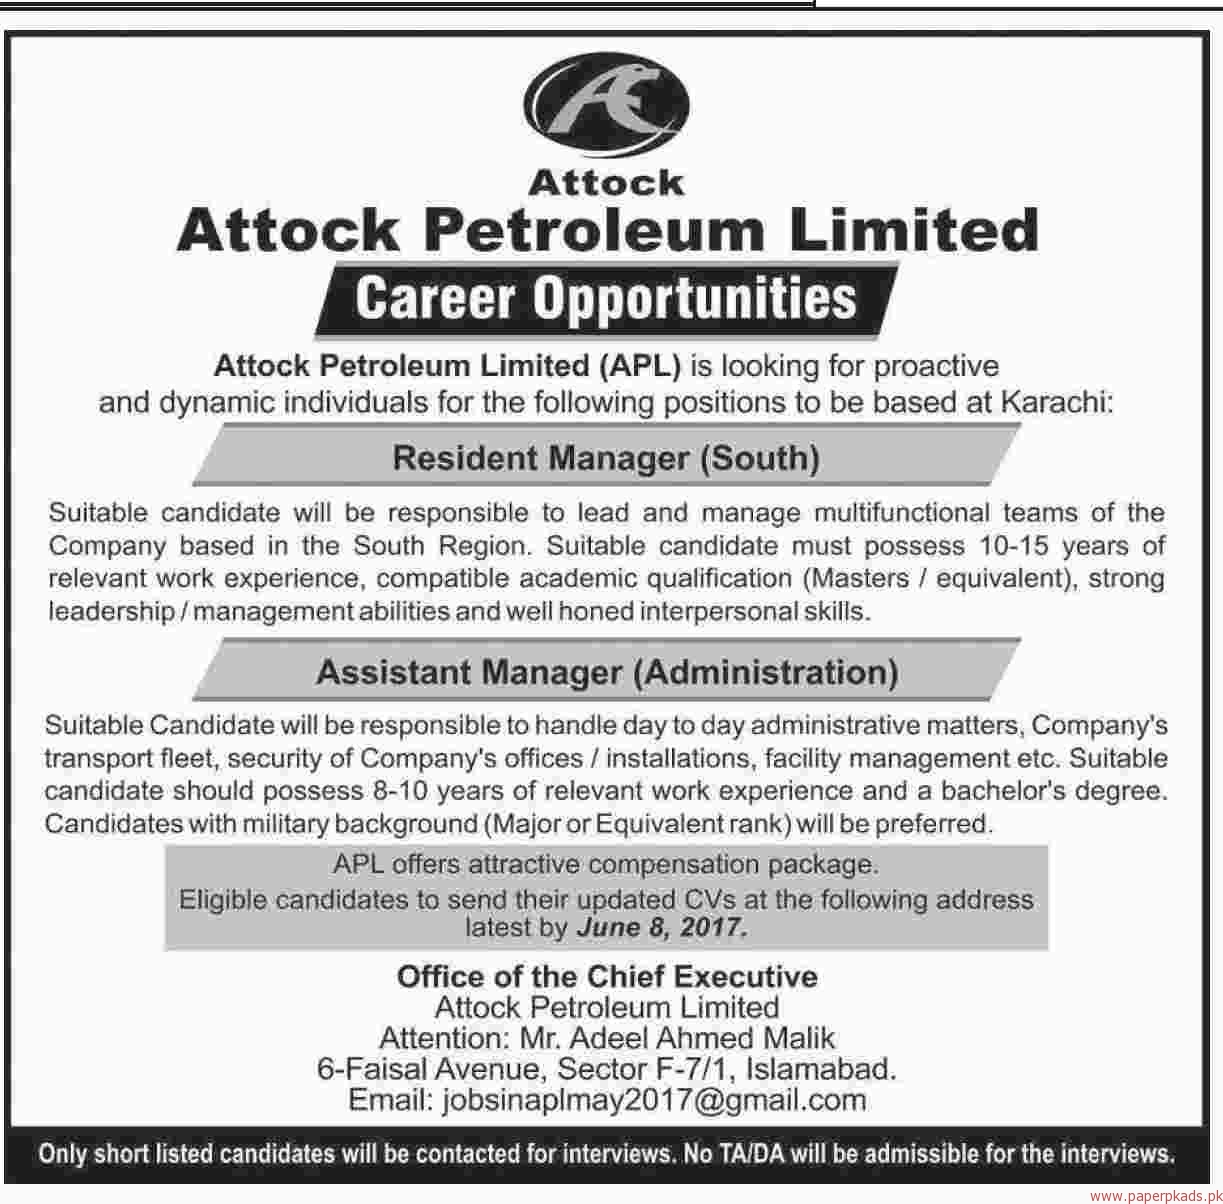 Attock Refinery Limited Performance Management Case Study Help - Case Solution & Analysis